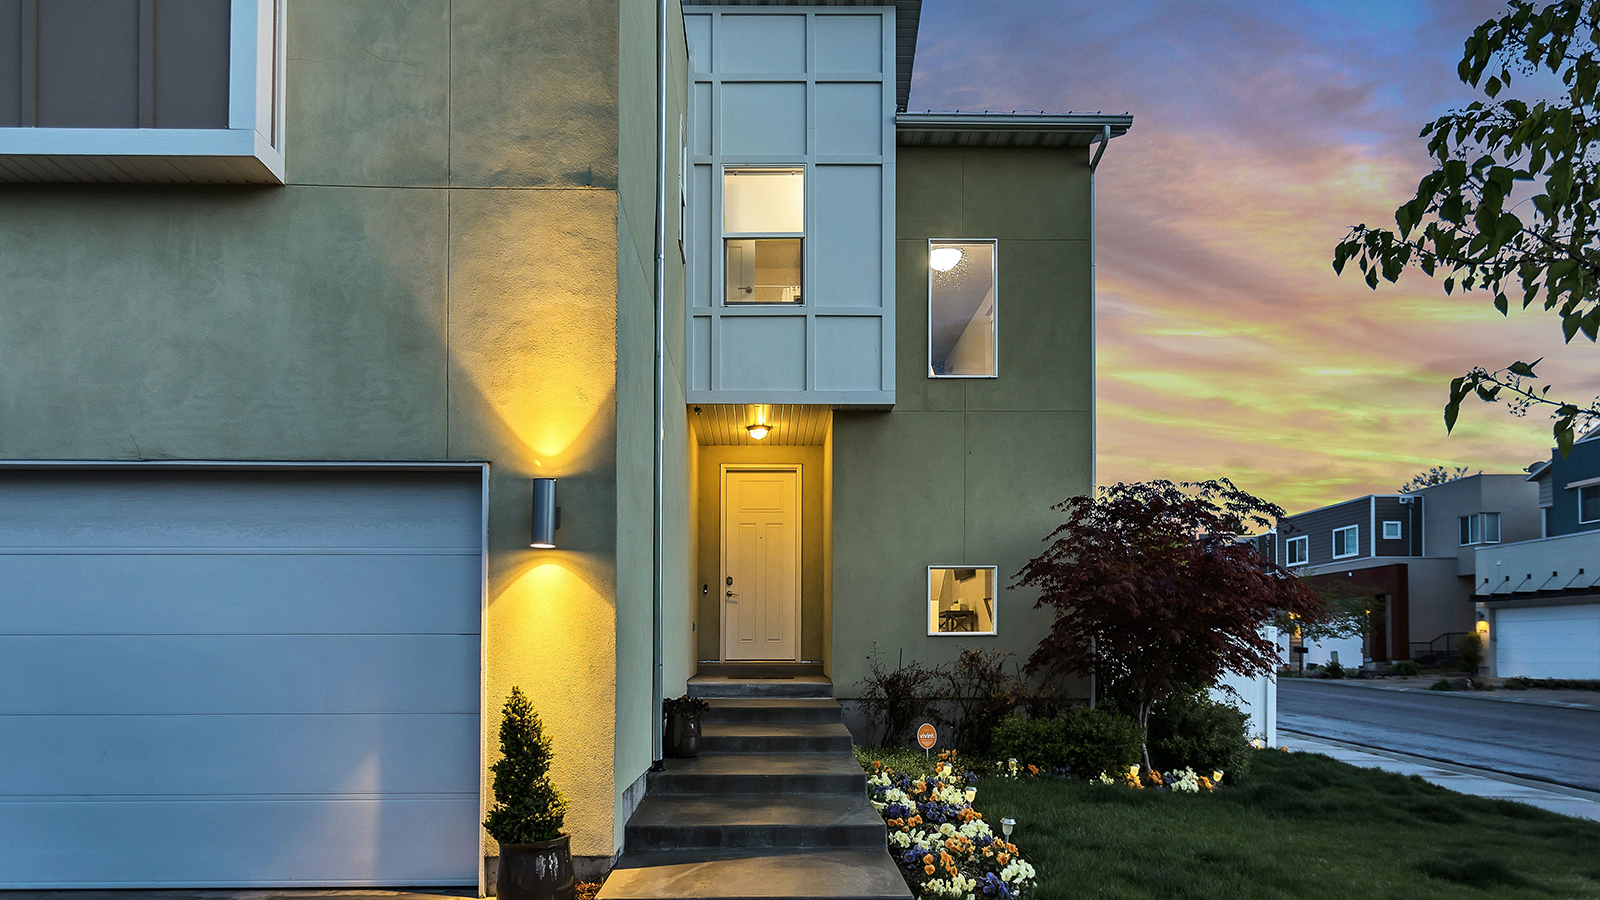 Why should residential mortgage notes be top of mind for investors?